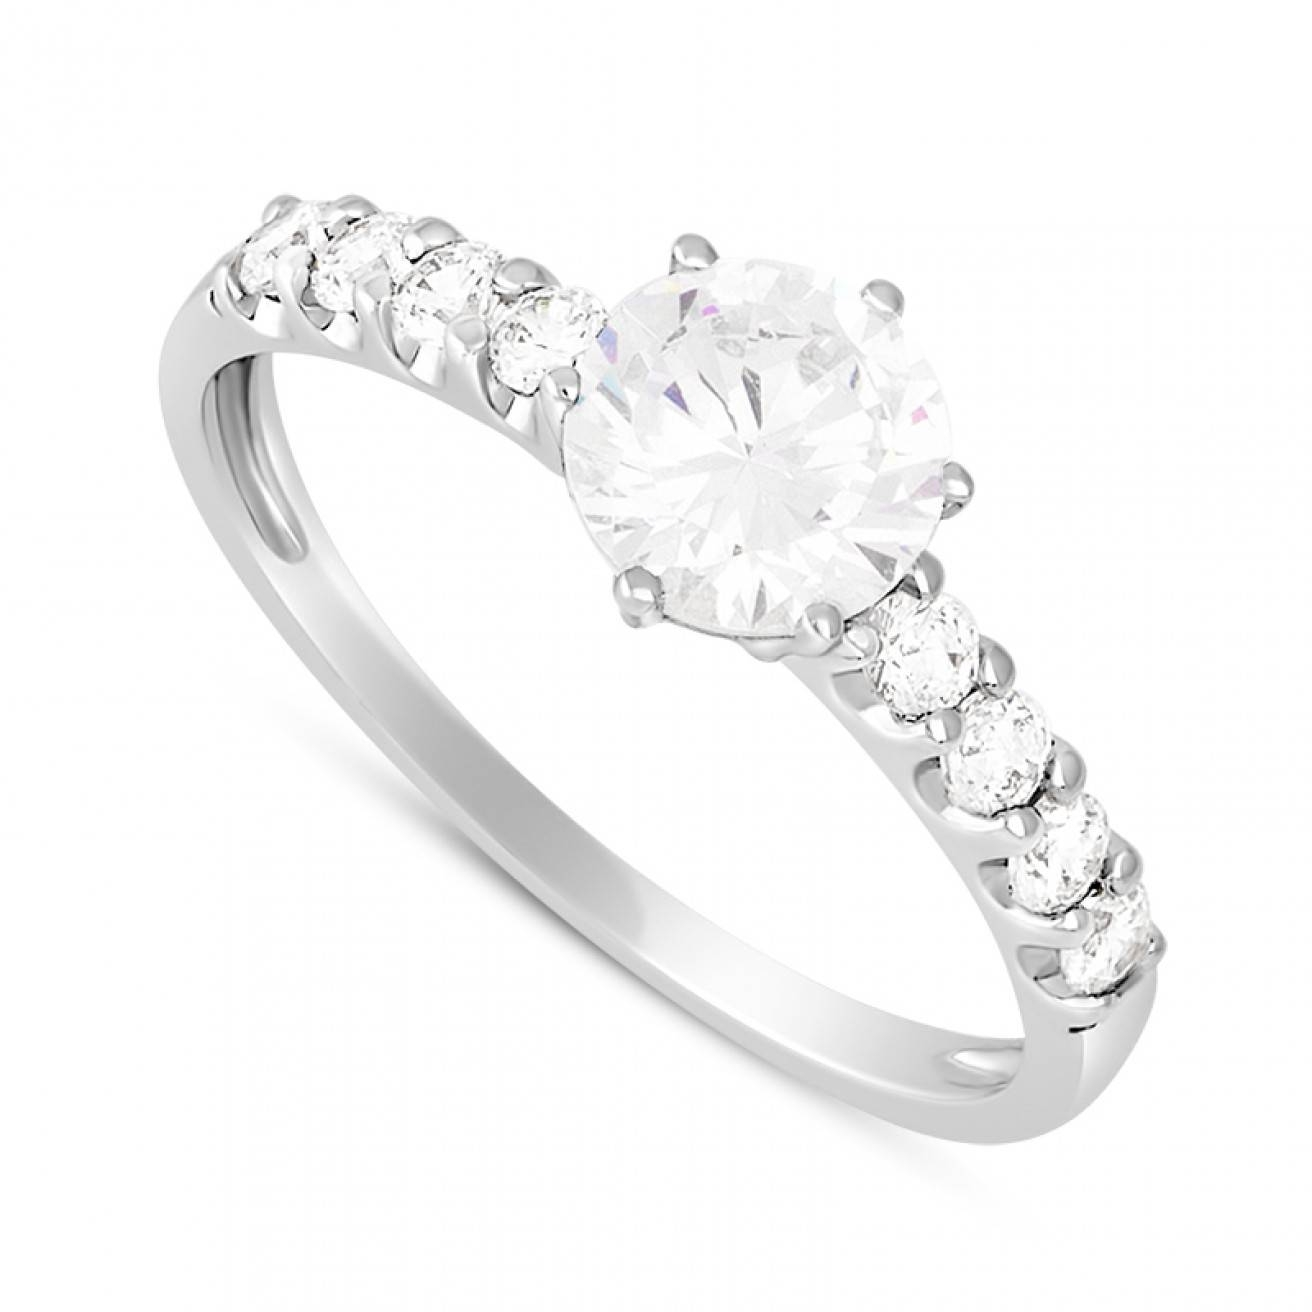 9Ct White Gold Round And Baguette Cubic Zirconia Ring Intended For White Gold Zirconia Wedding Rings (View 5 of 15)